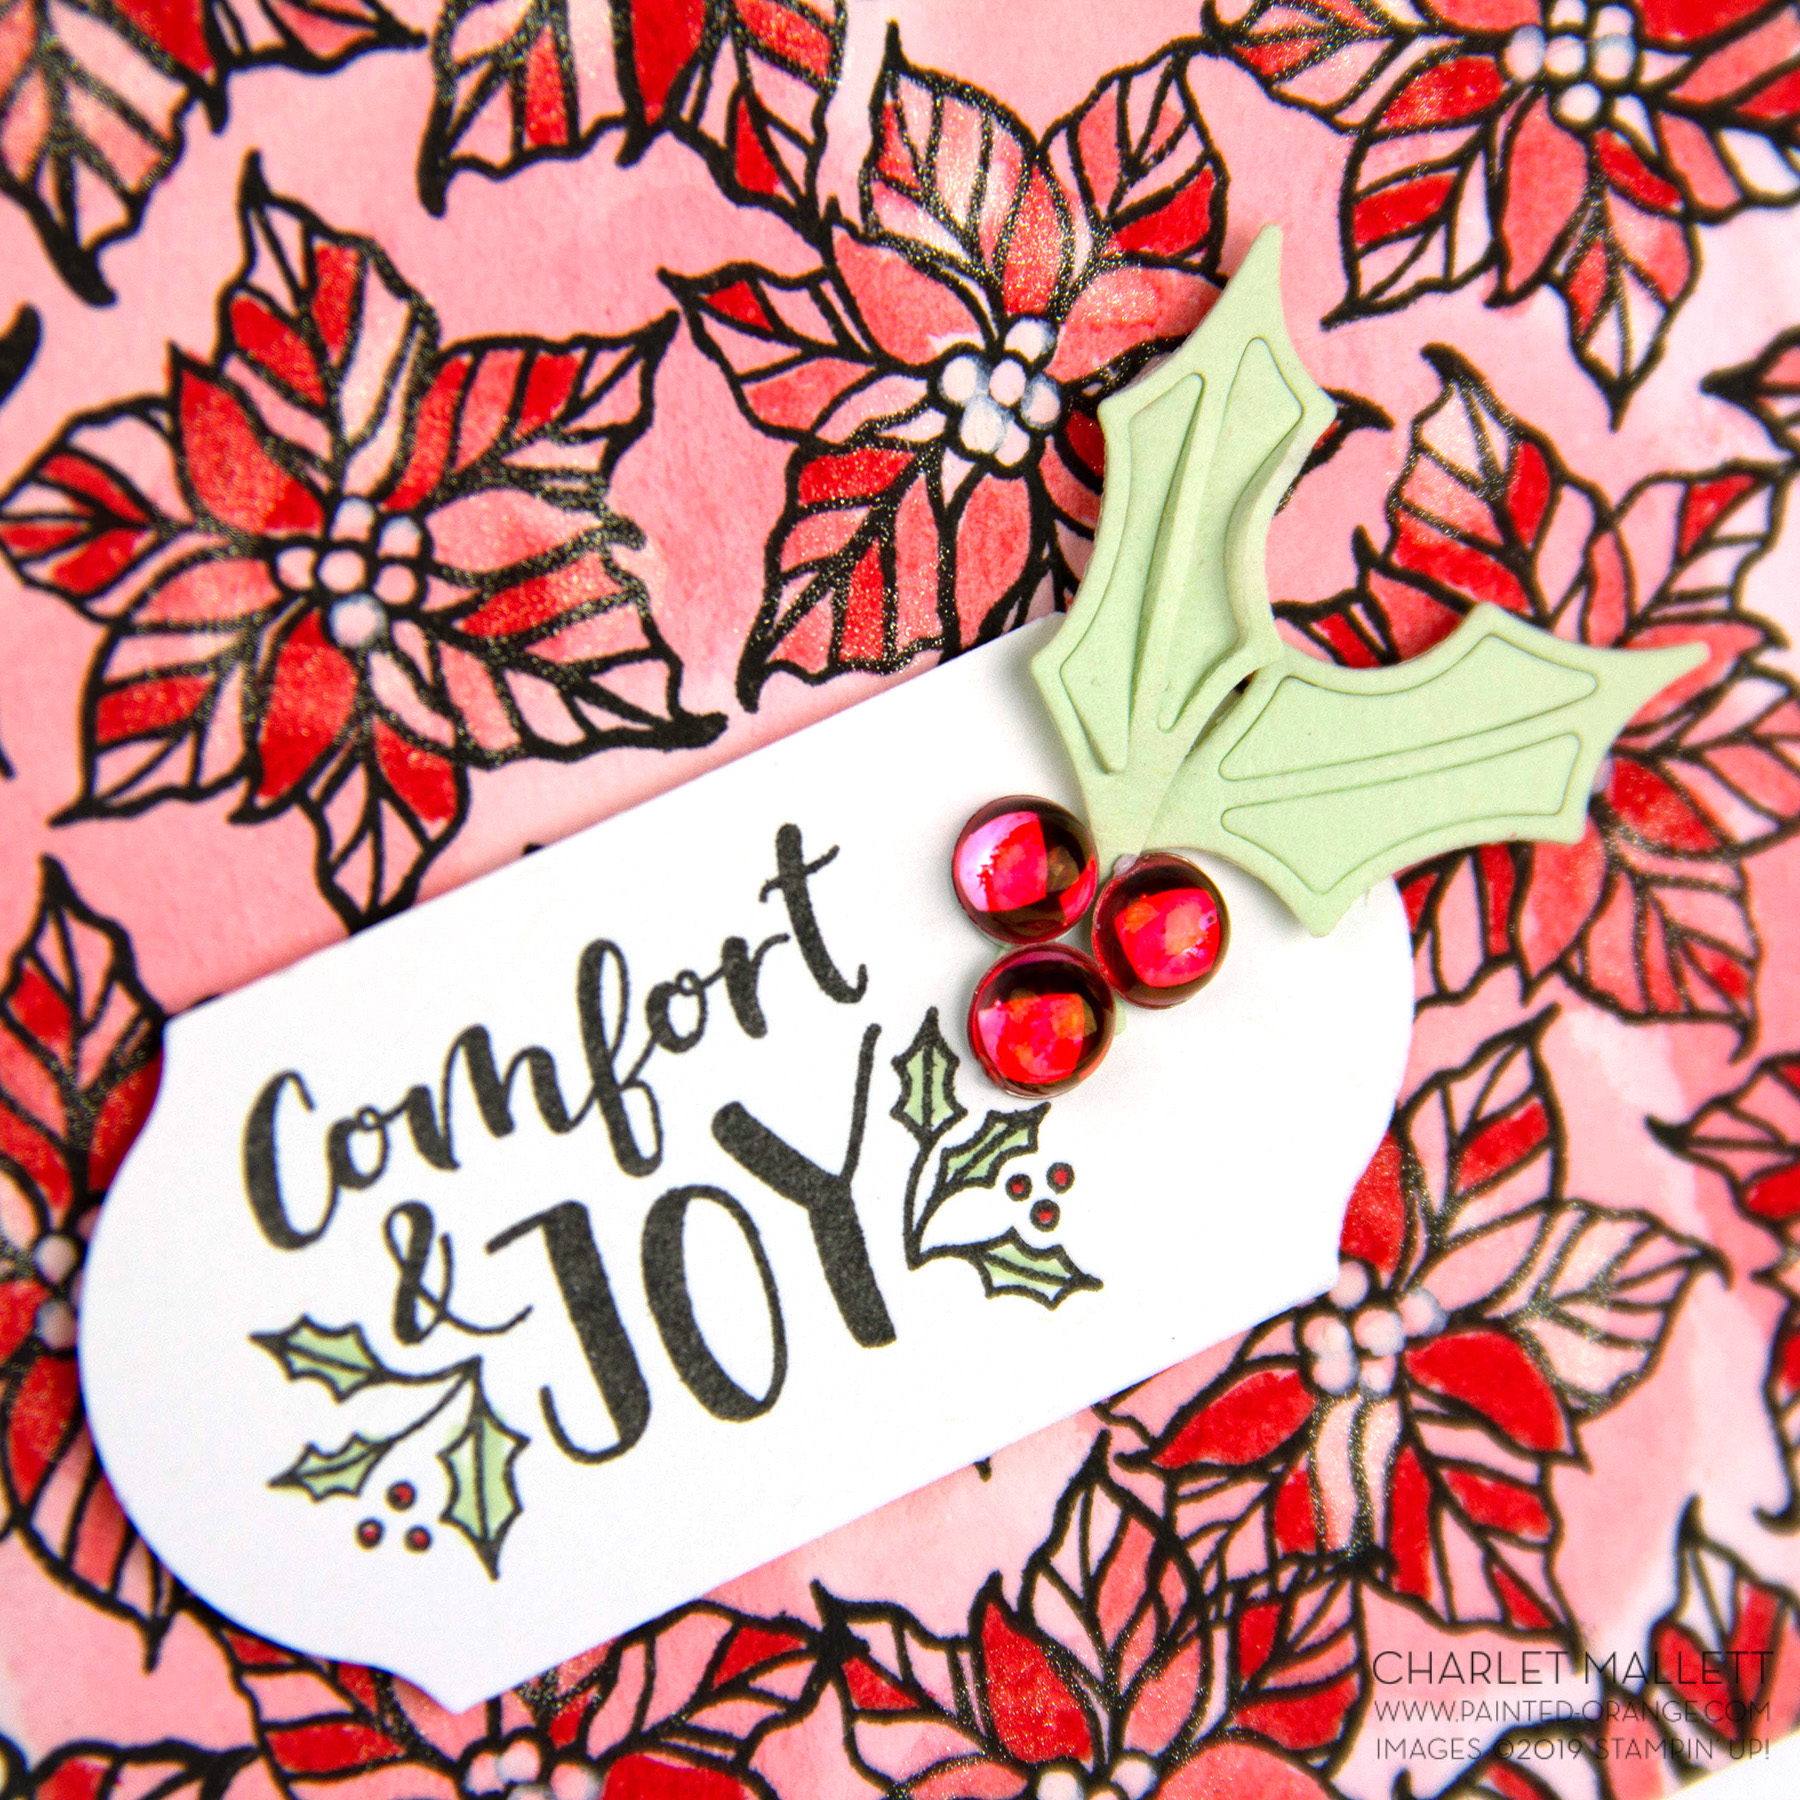 Cup of Christmas Poinsettia card - Charlet Mallett - Stampin' Up!